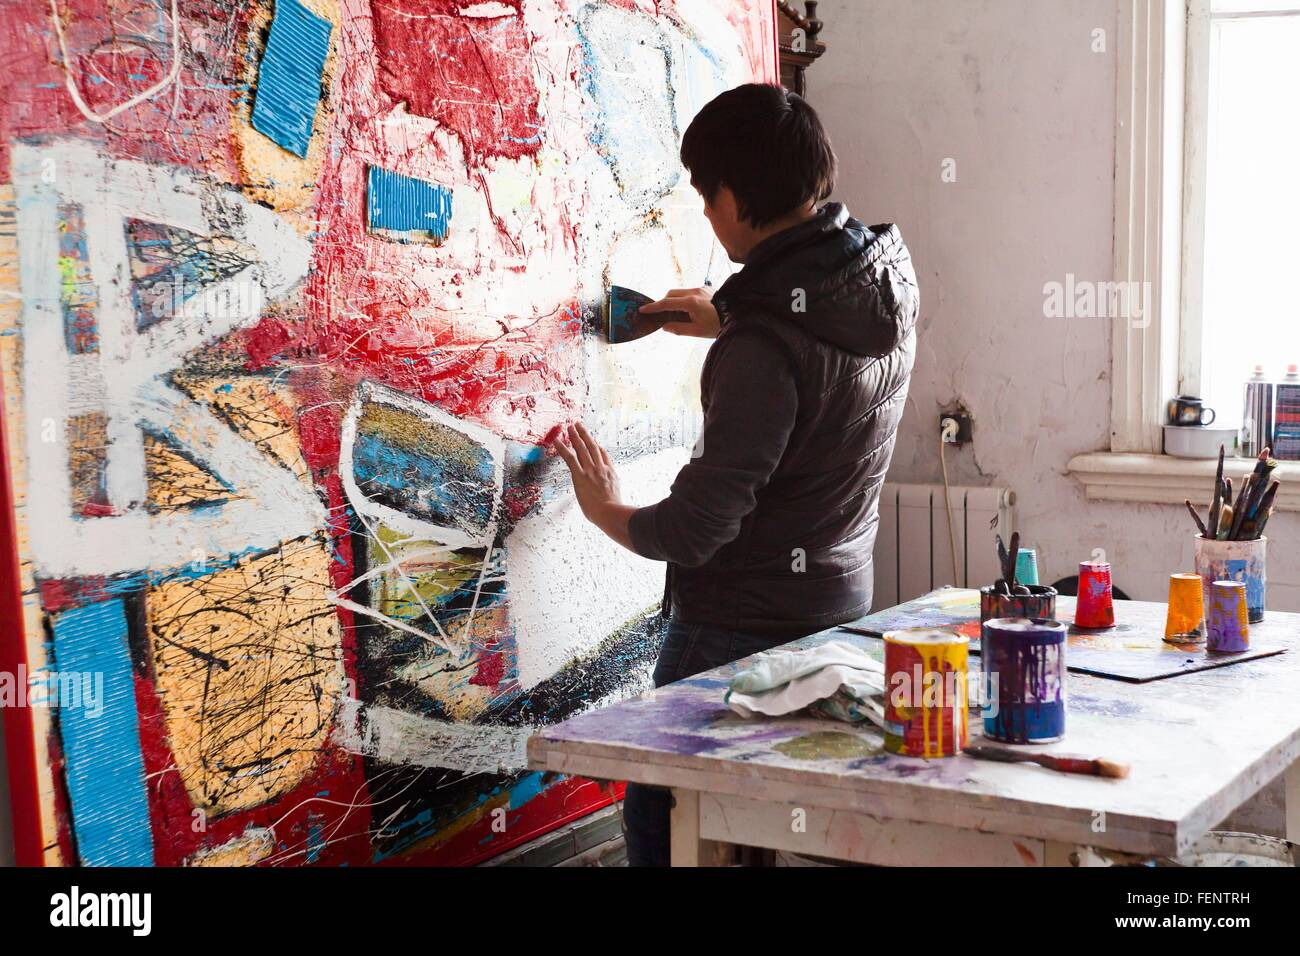 Male artist creating painted artwork - Stock Image